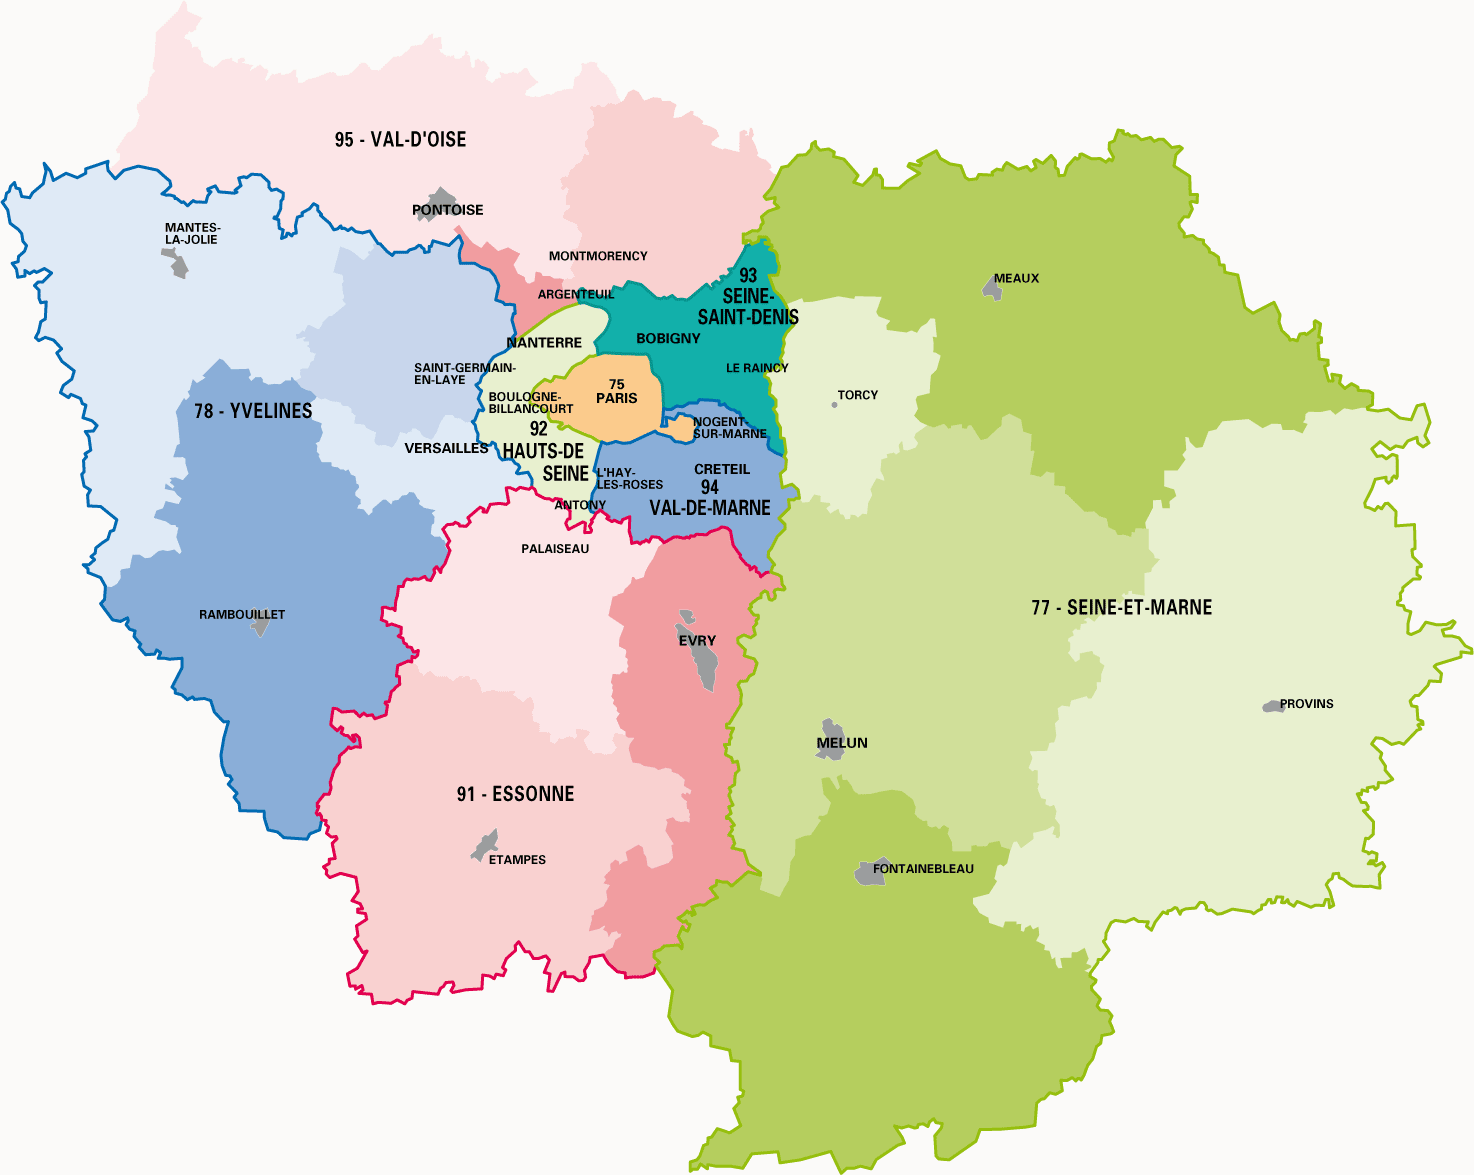 carte paris ile de france La carte des départements de la région Ile de France